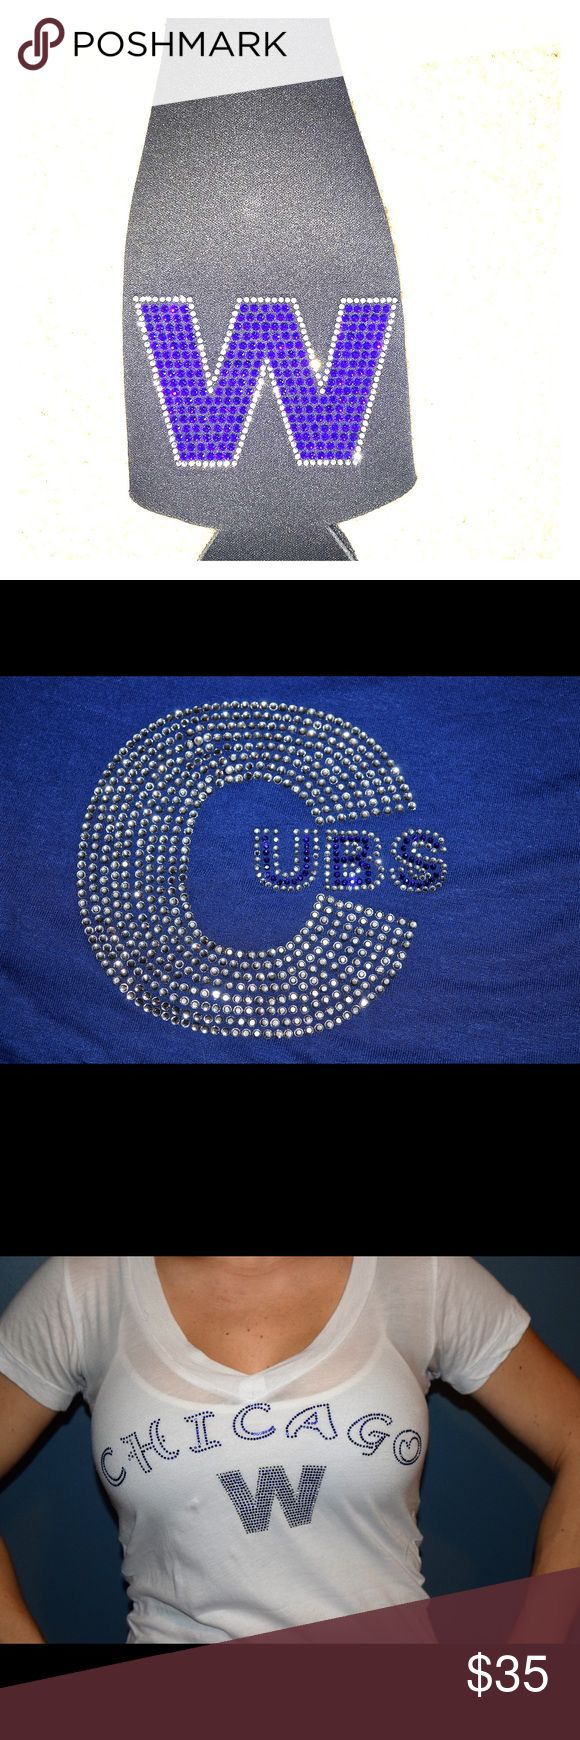 """Customized cubs apparel I can take any image mascot or wording and turn it into crystals then apply to your choice of garment.   Hats ,shirts ,cup koozies ,bags etc.. let me help you  """"SPARKLE"""" with customized bling. Other"""